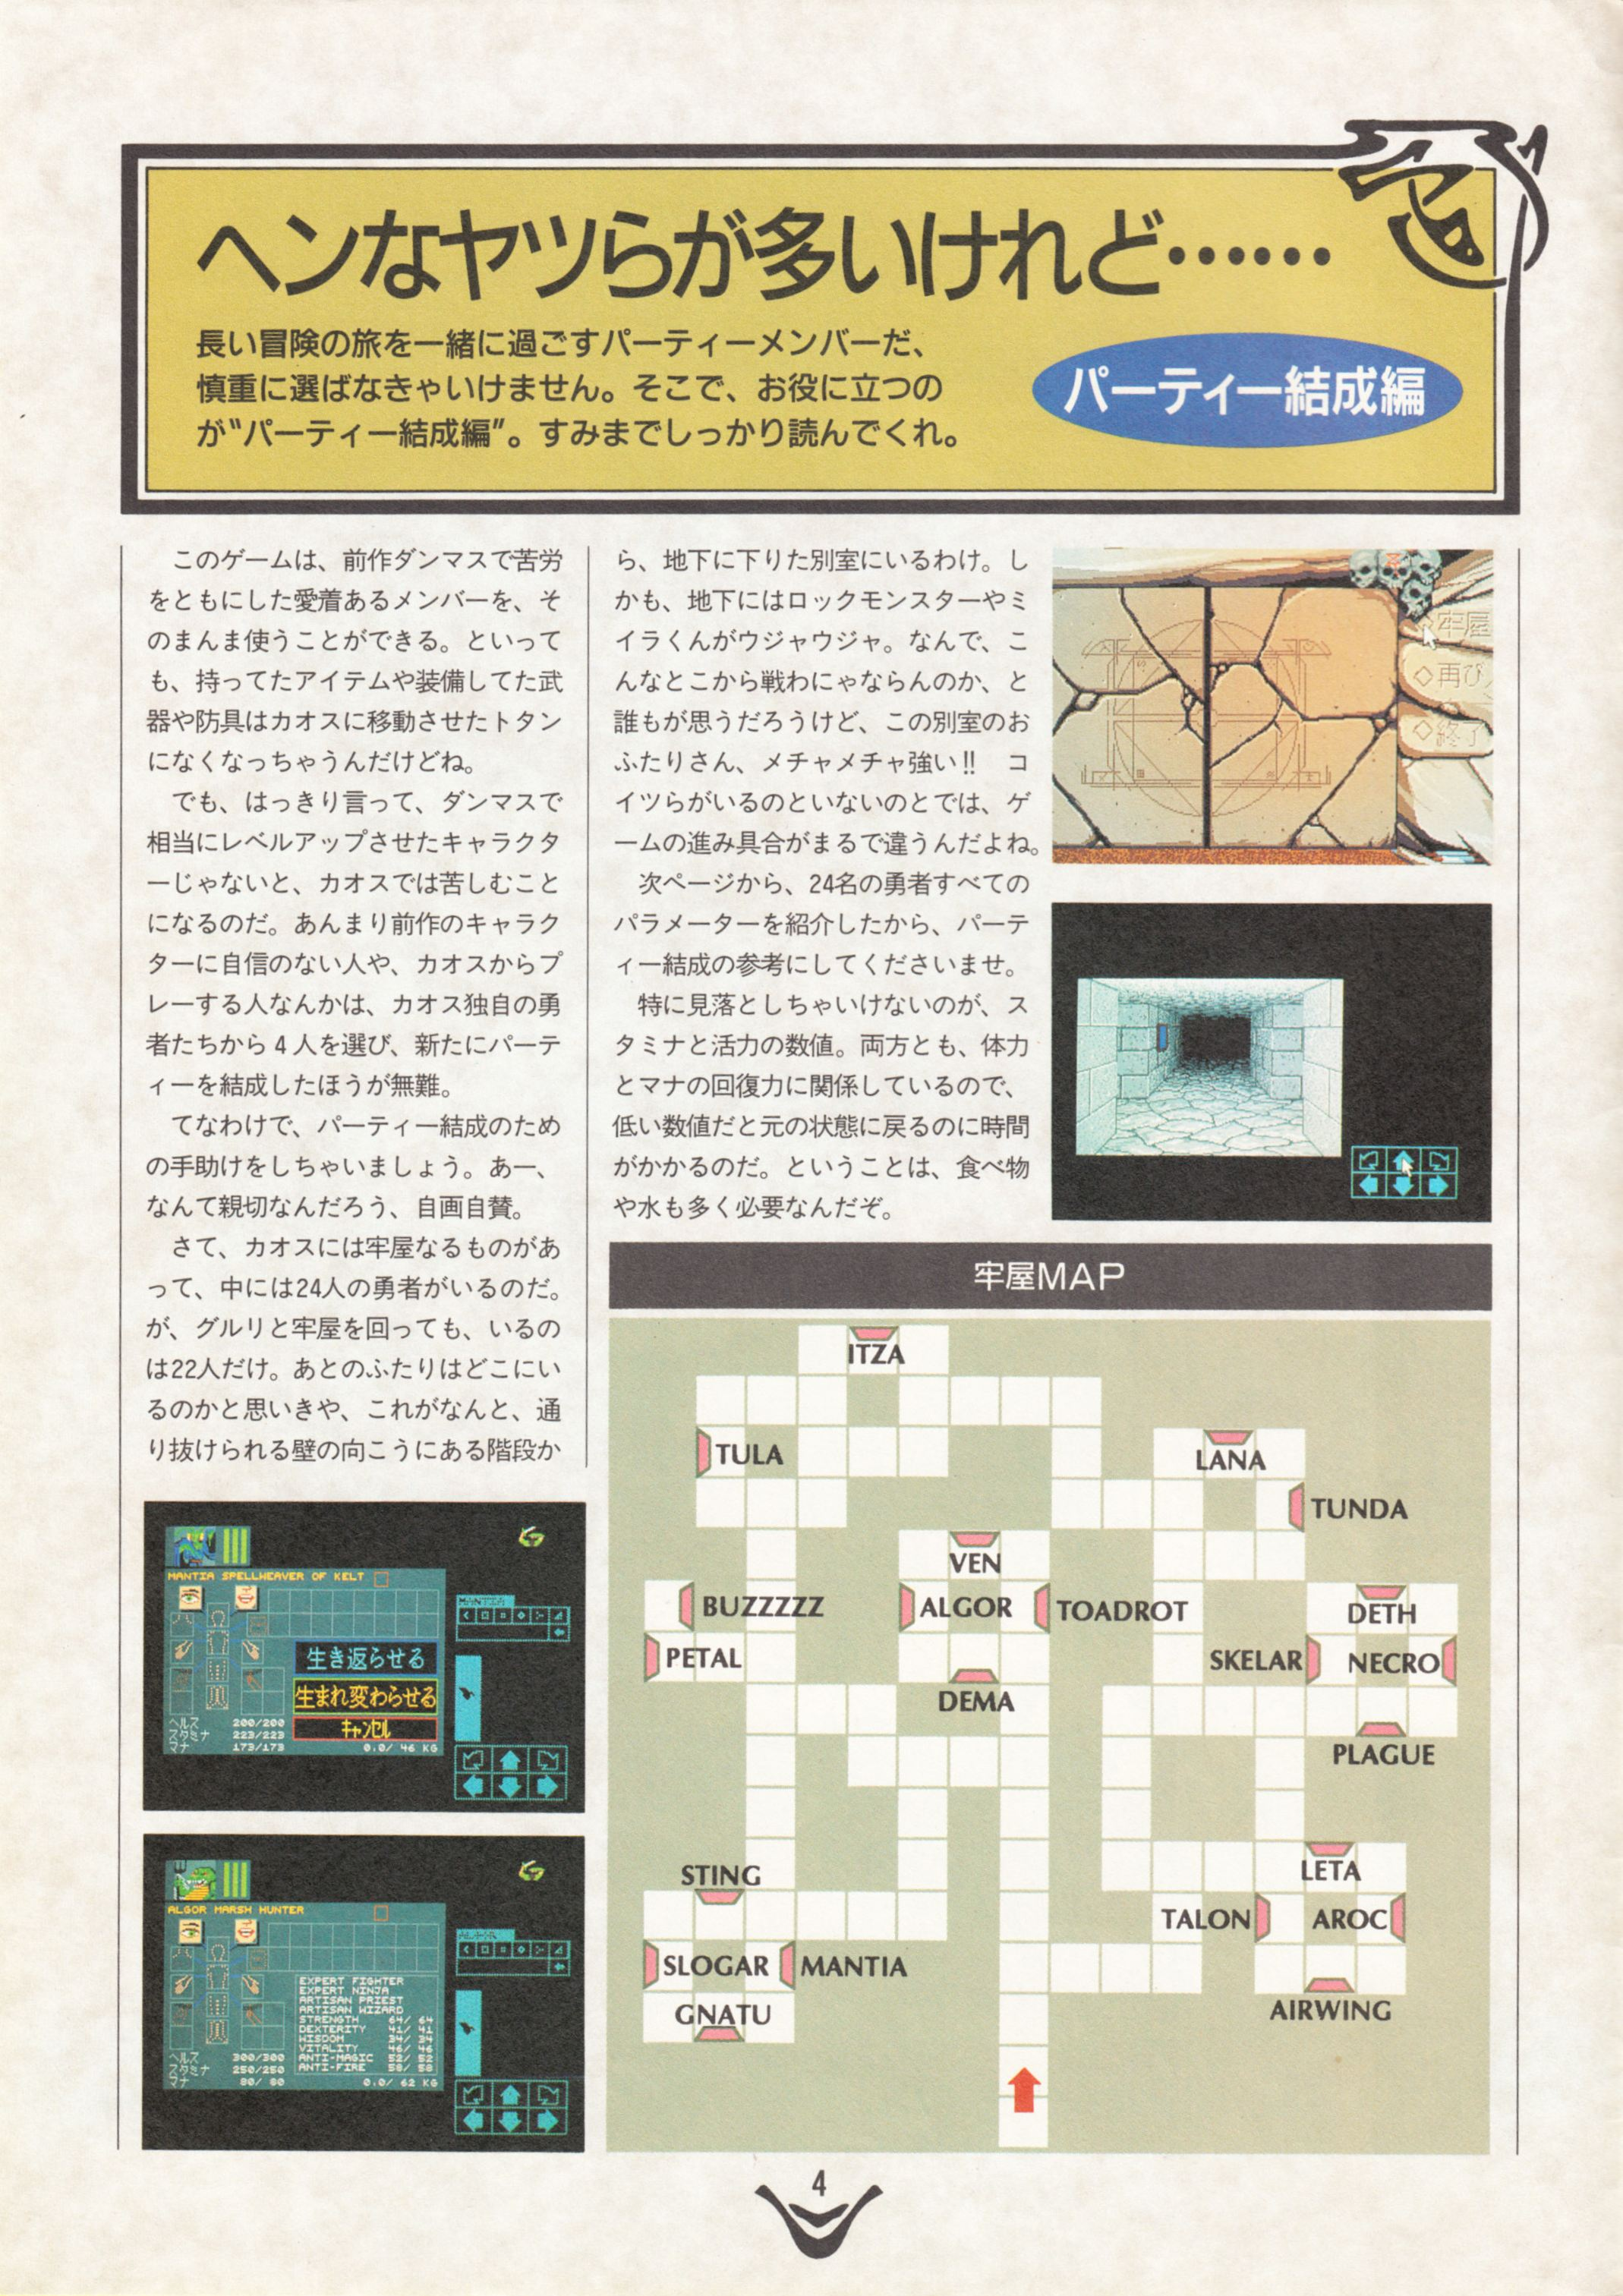 Special Supplement 1 - Chaos Strikes Back Guide published in Japanese magazine 'Login', Vol 9 No 24 21 December 1990, Page 4